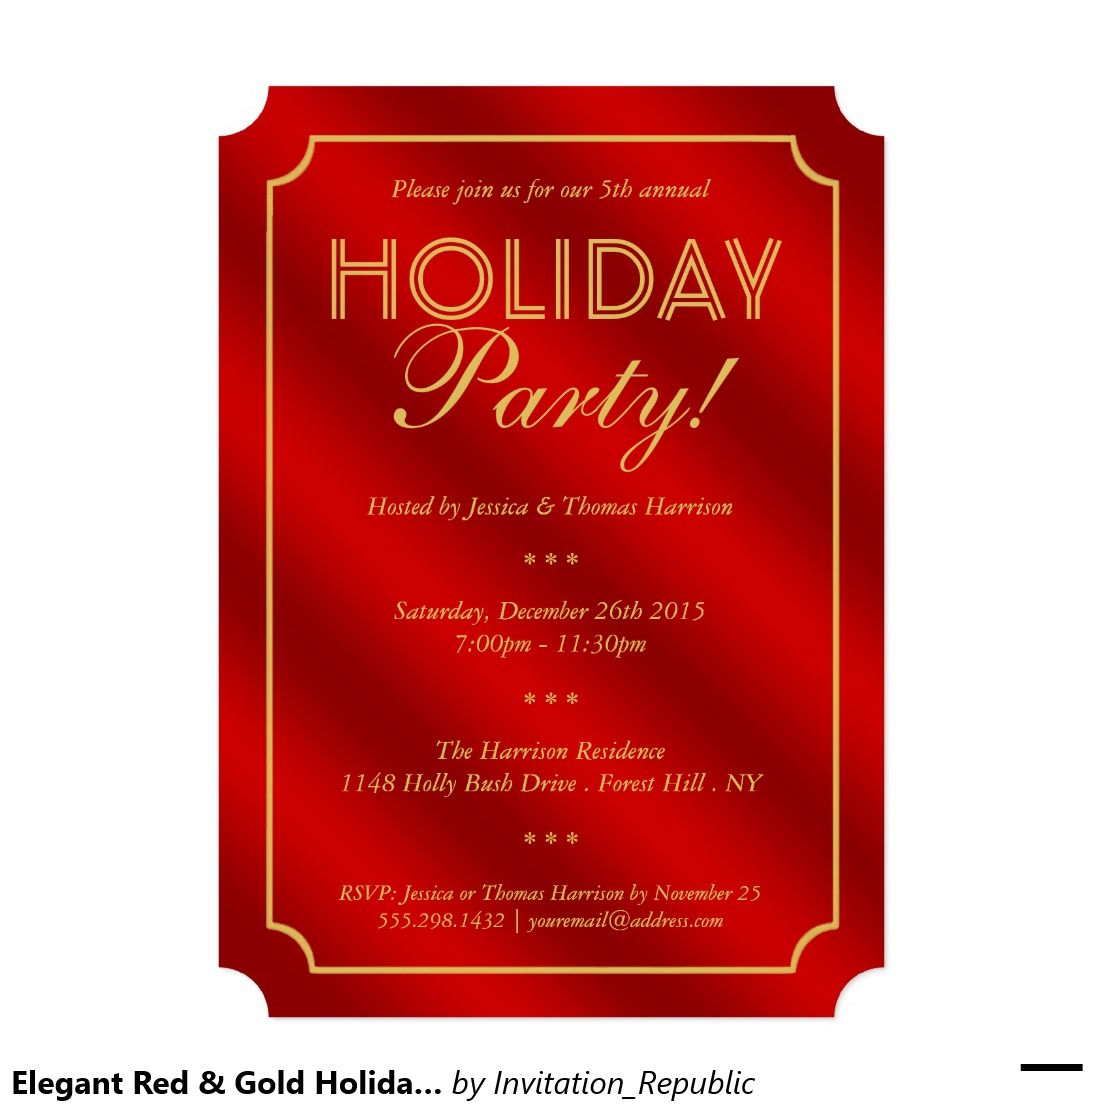 Elegant Red & Gold Holiday Party 5x7 Paper Invitation Card